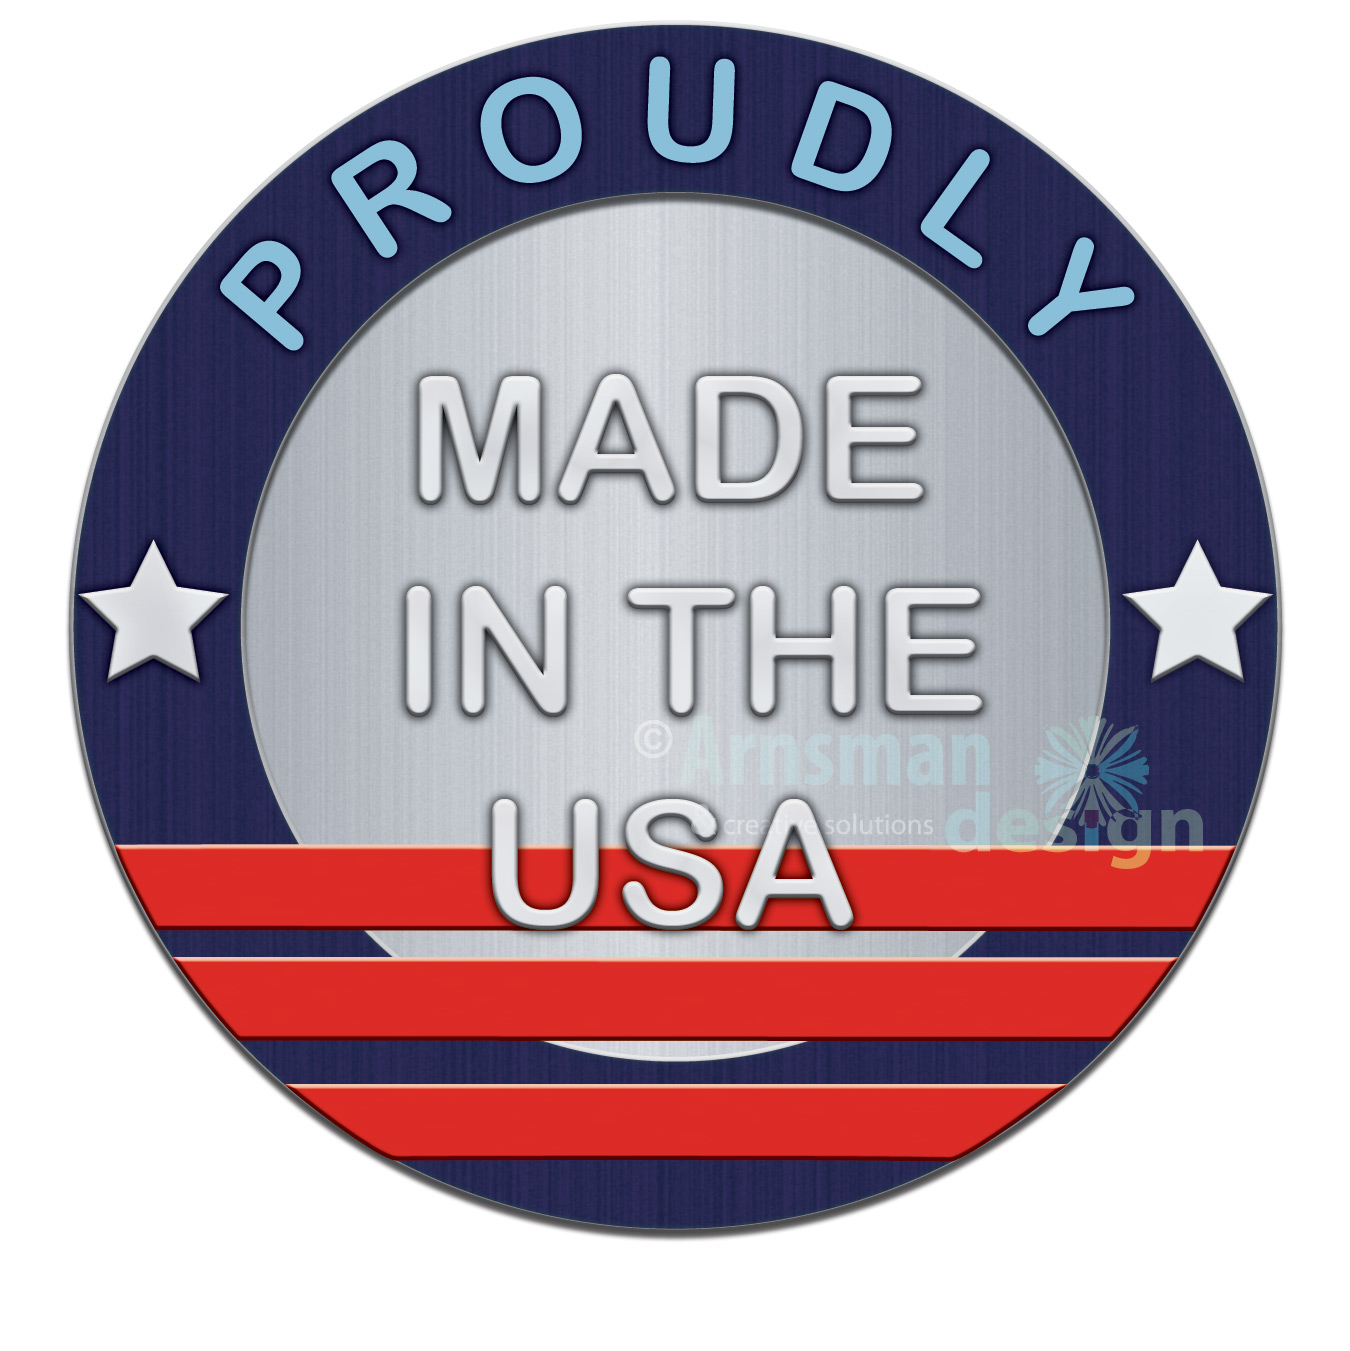 Made in the USA Badge Icon by Connie Arnsman